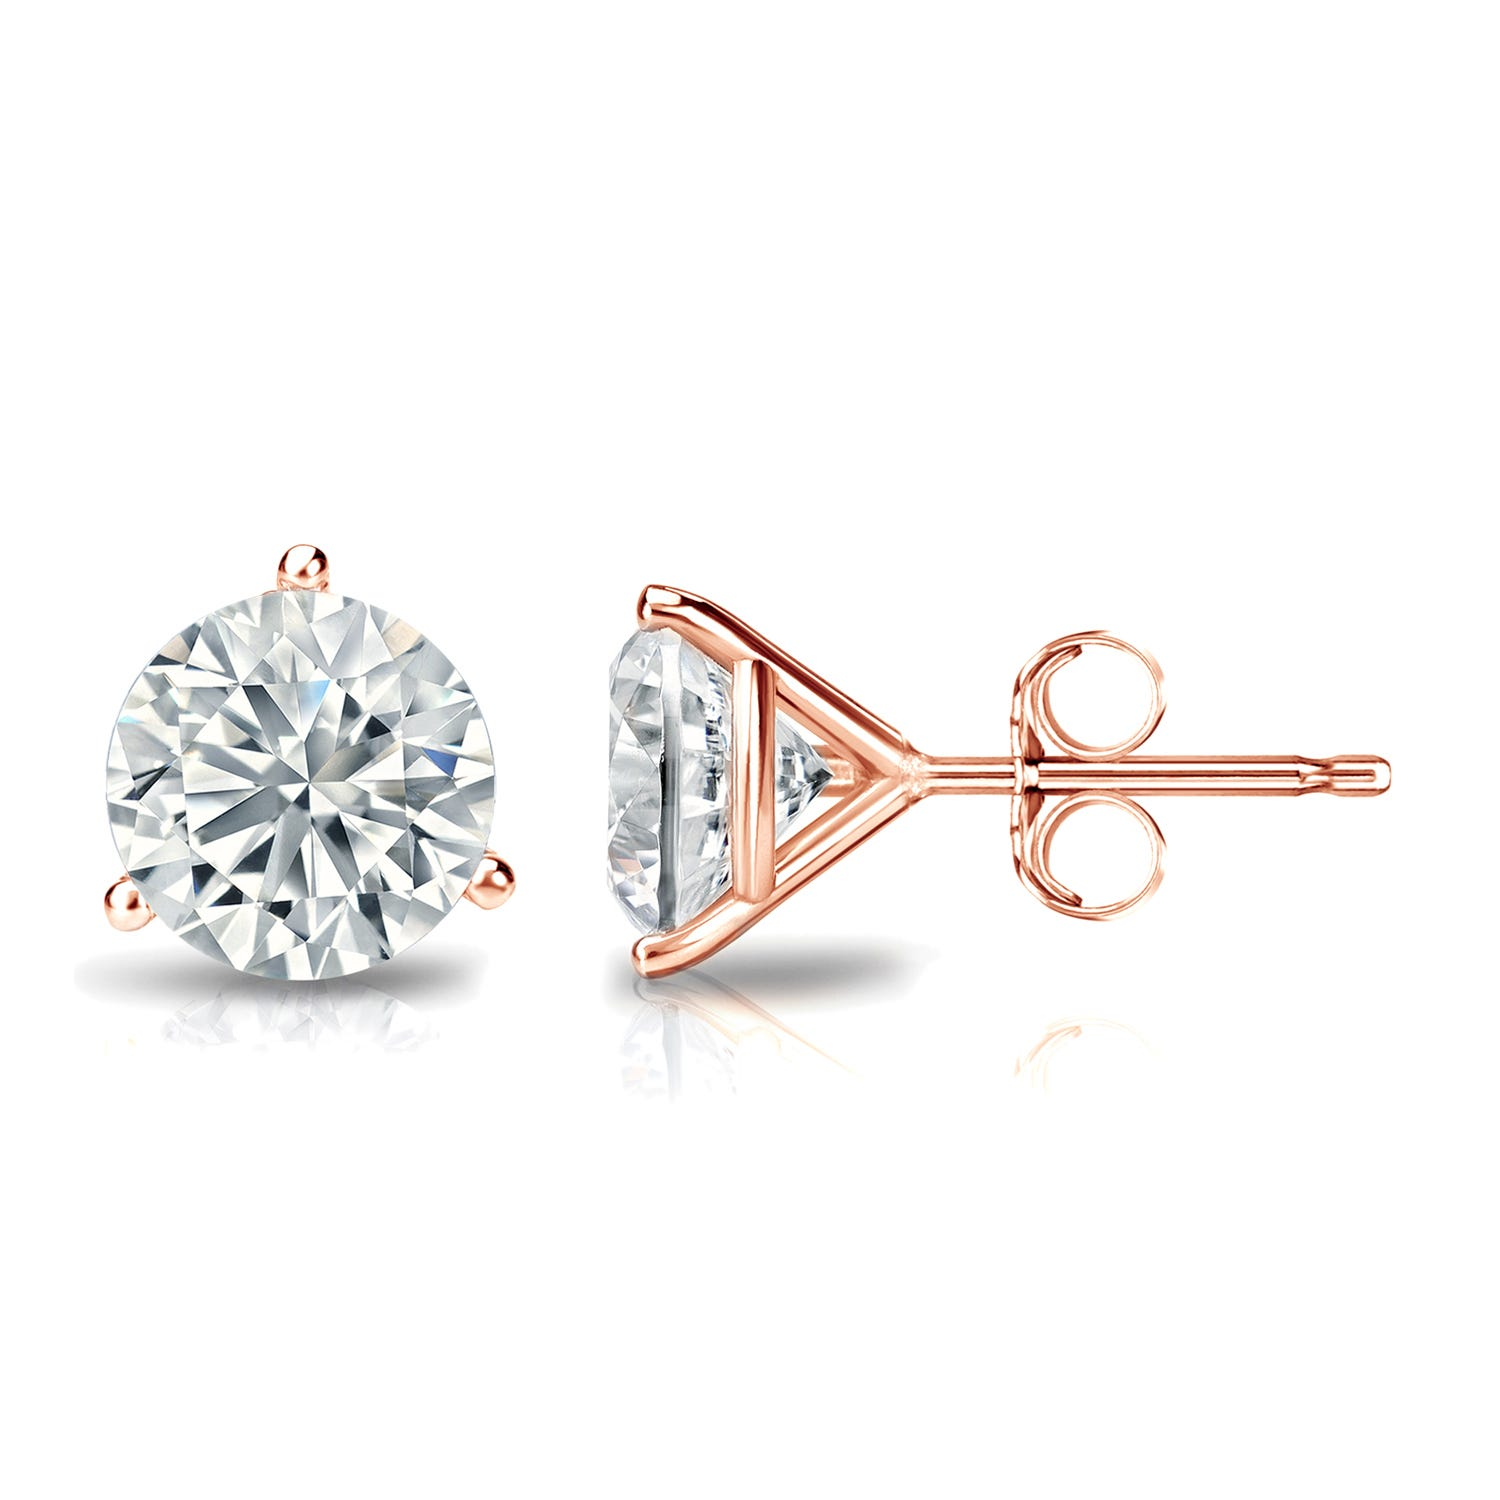 1-1/2 CTTW Round Diamond Solitaire Stud Earrings IJ I2 in 14K Rose Gold IGI Certified 3-Prong Setting